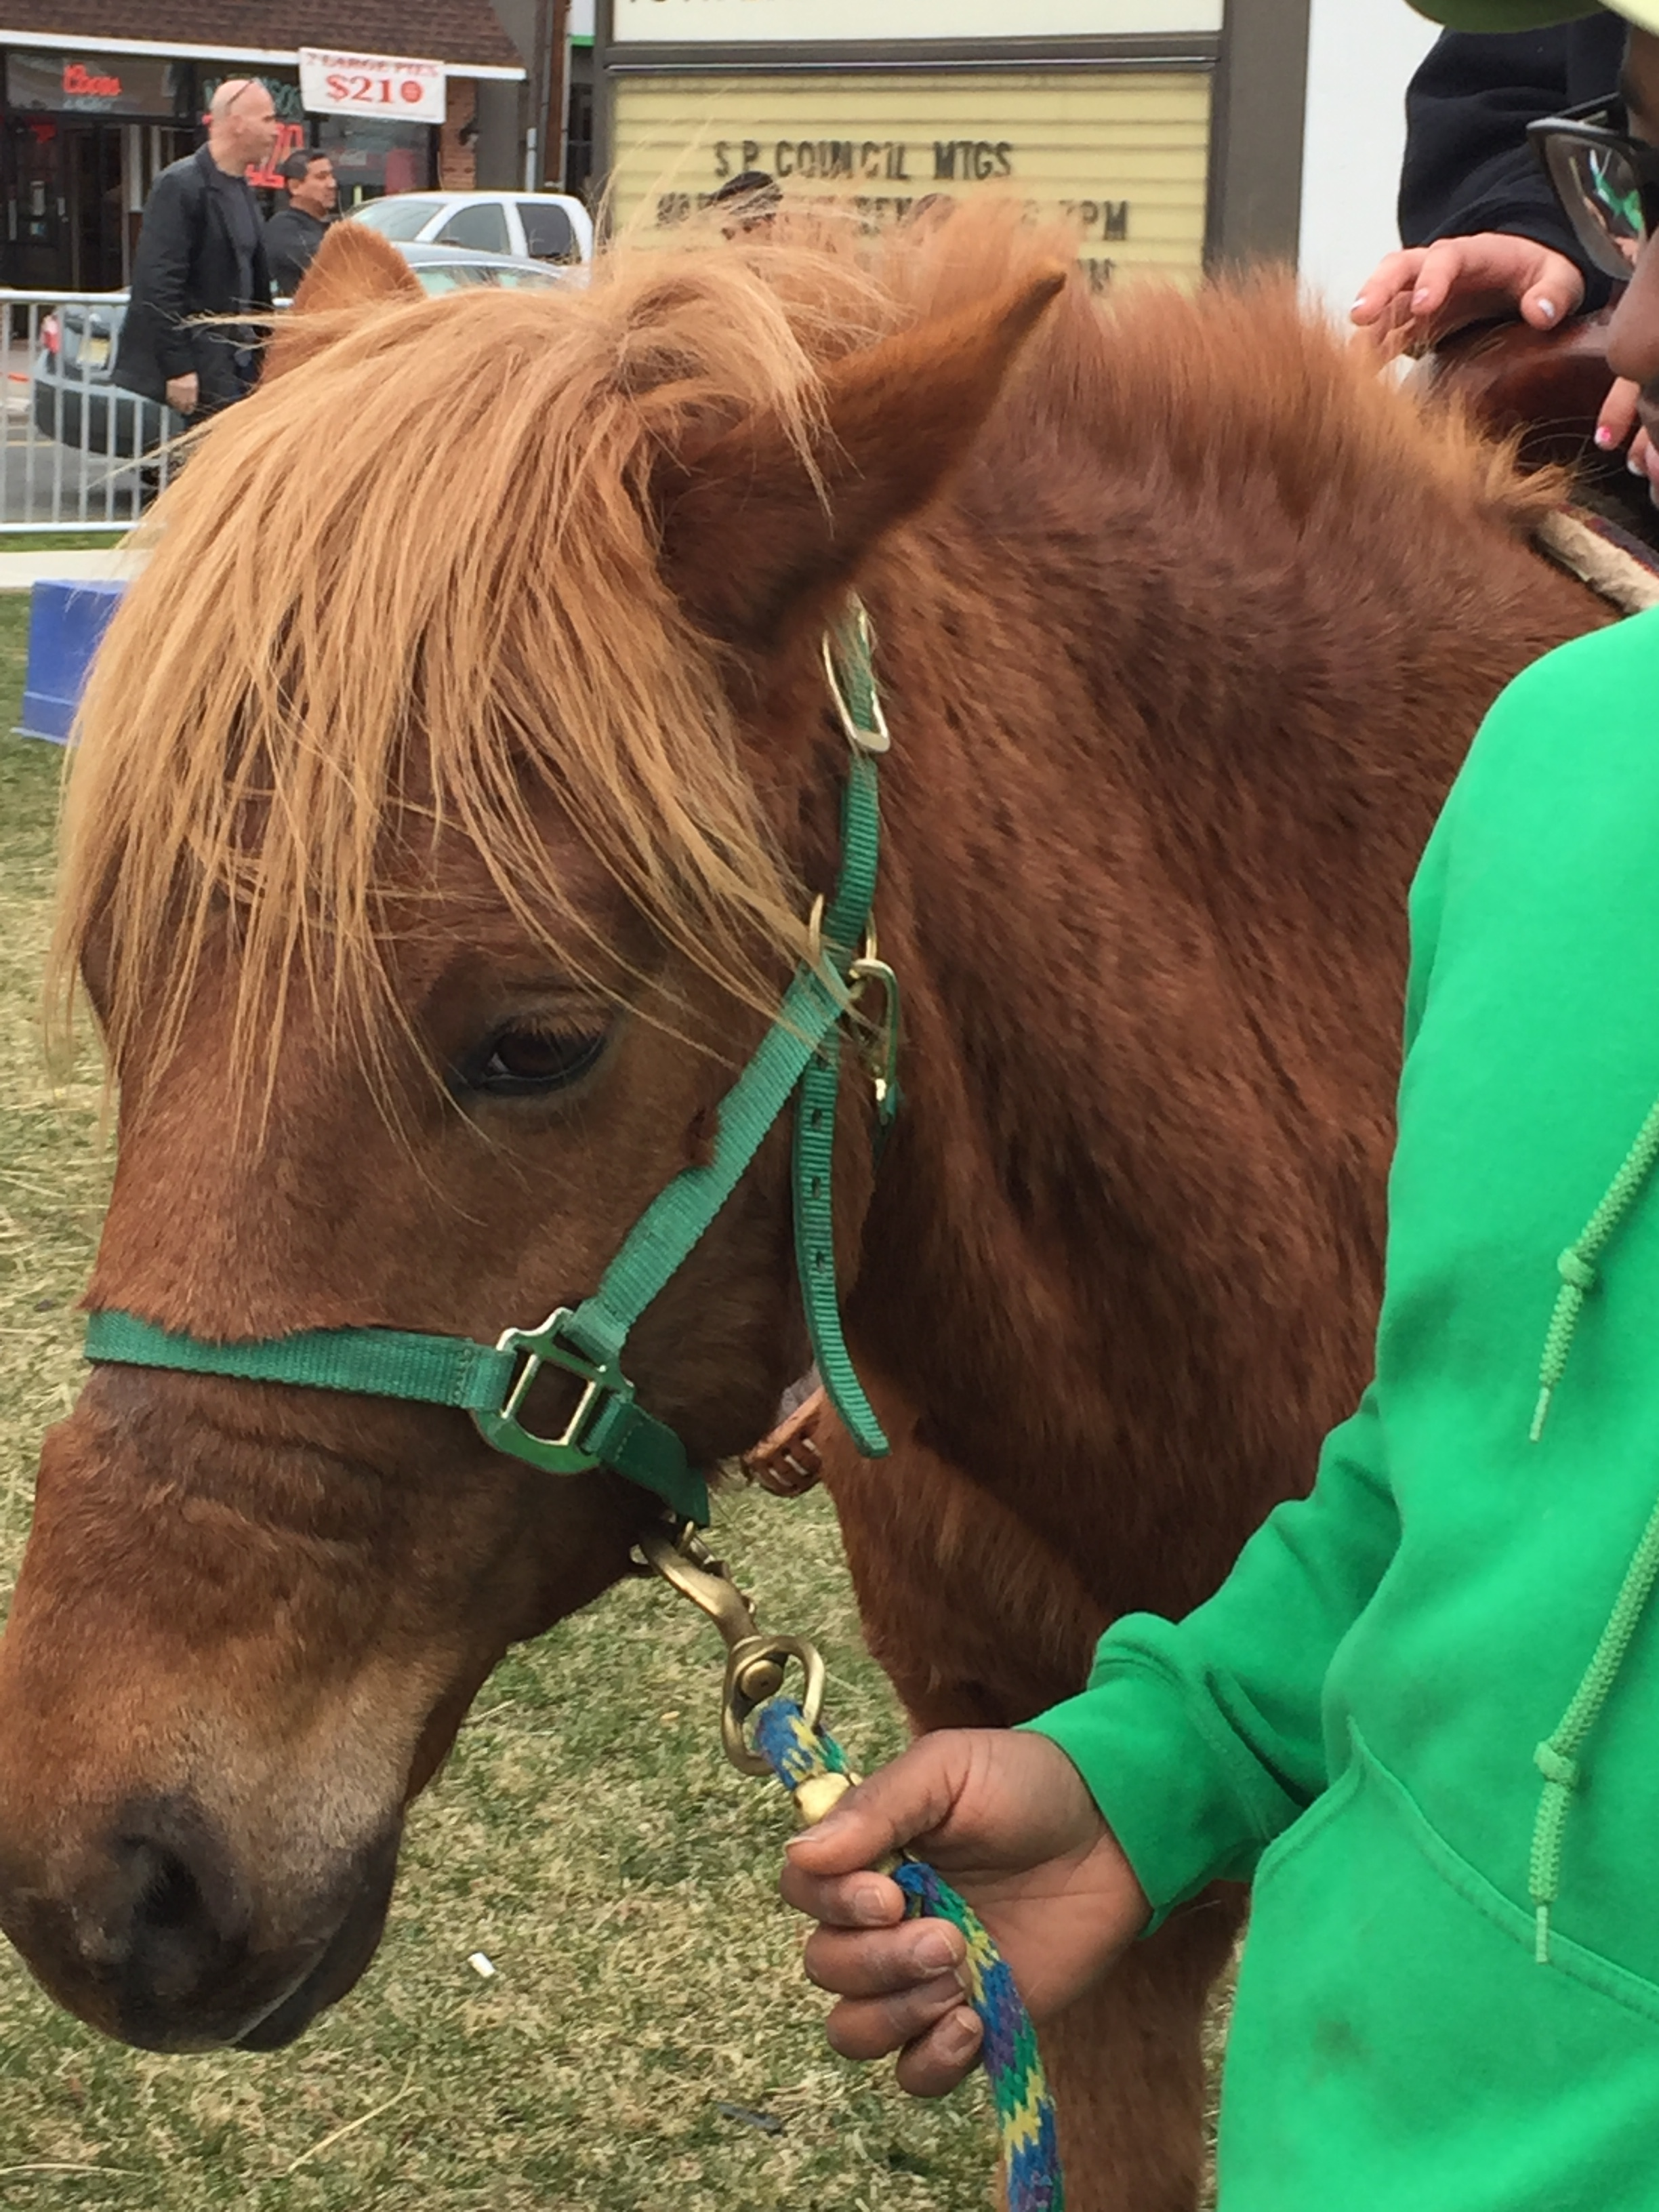 St. Patrick's Day festival close up of Pie the pony